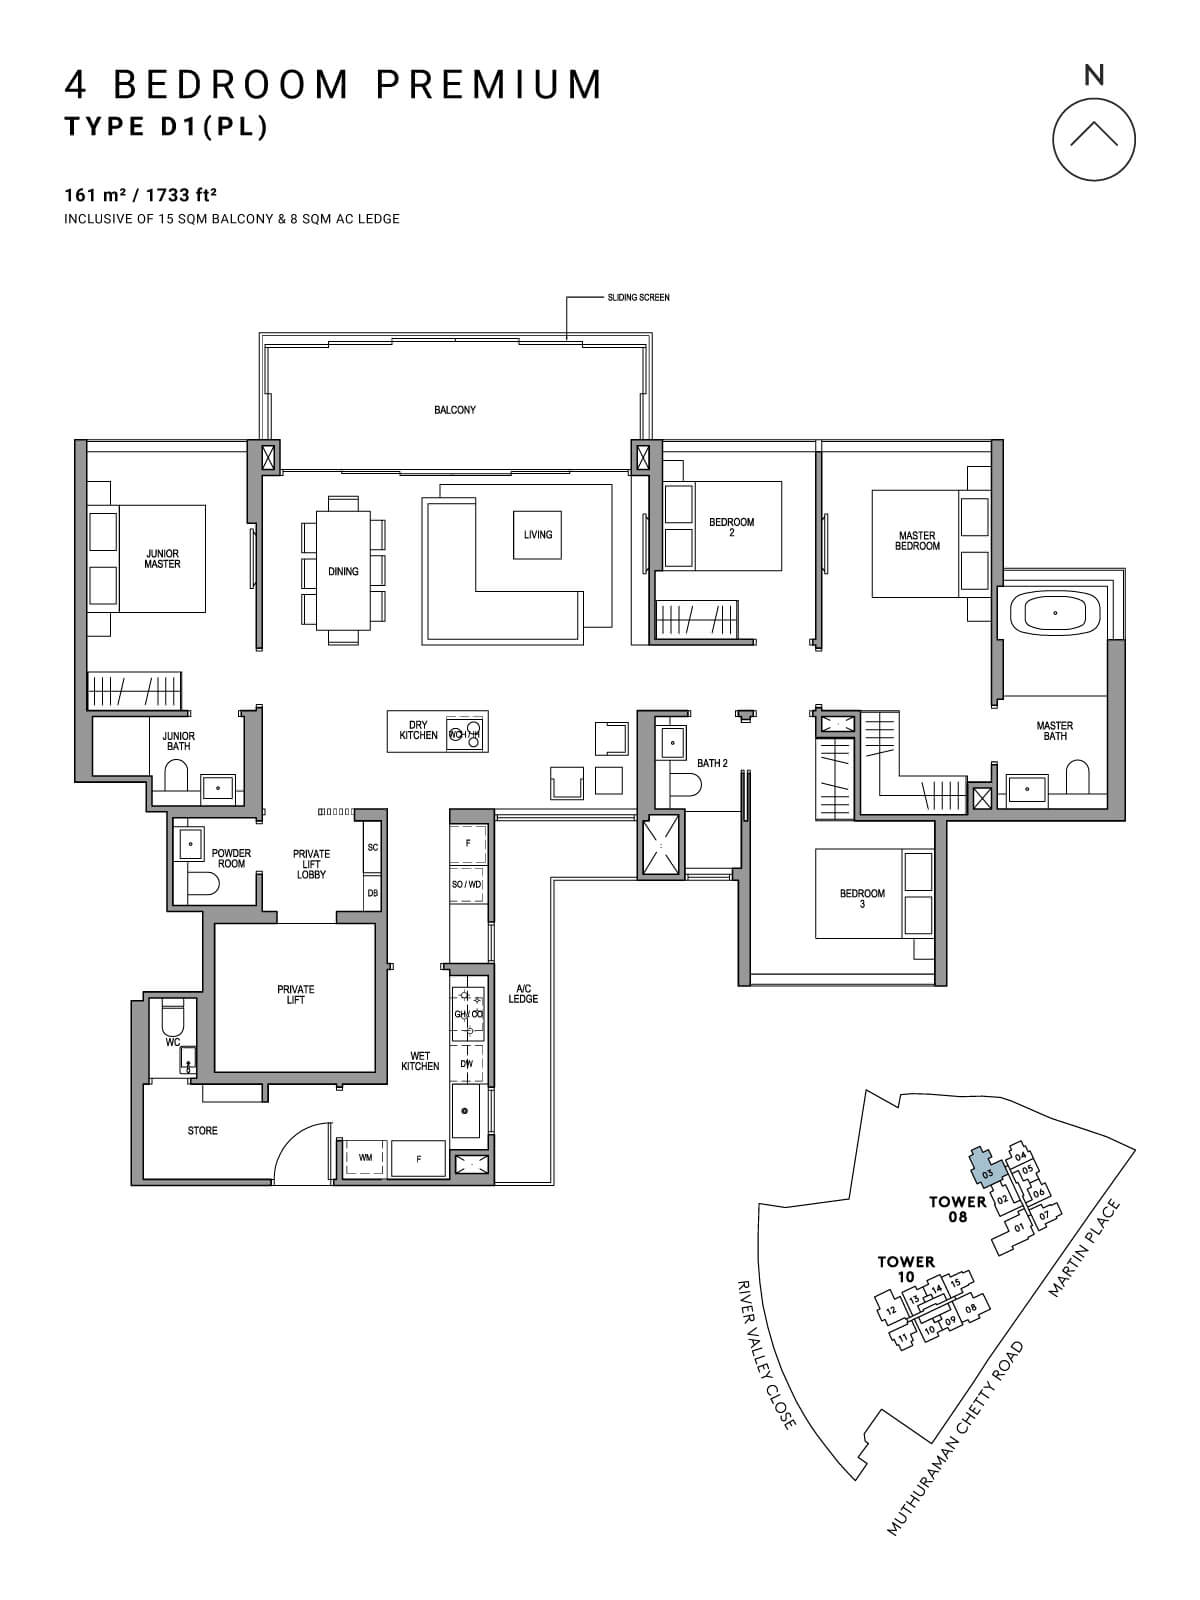 Martin Modern Floor Plan 4 Bedroom Premium Type D1(PL)